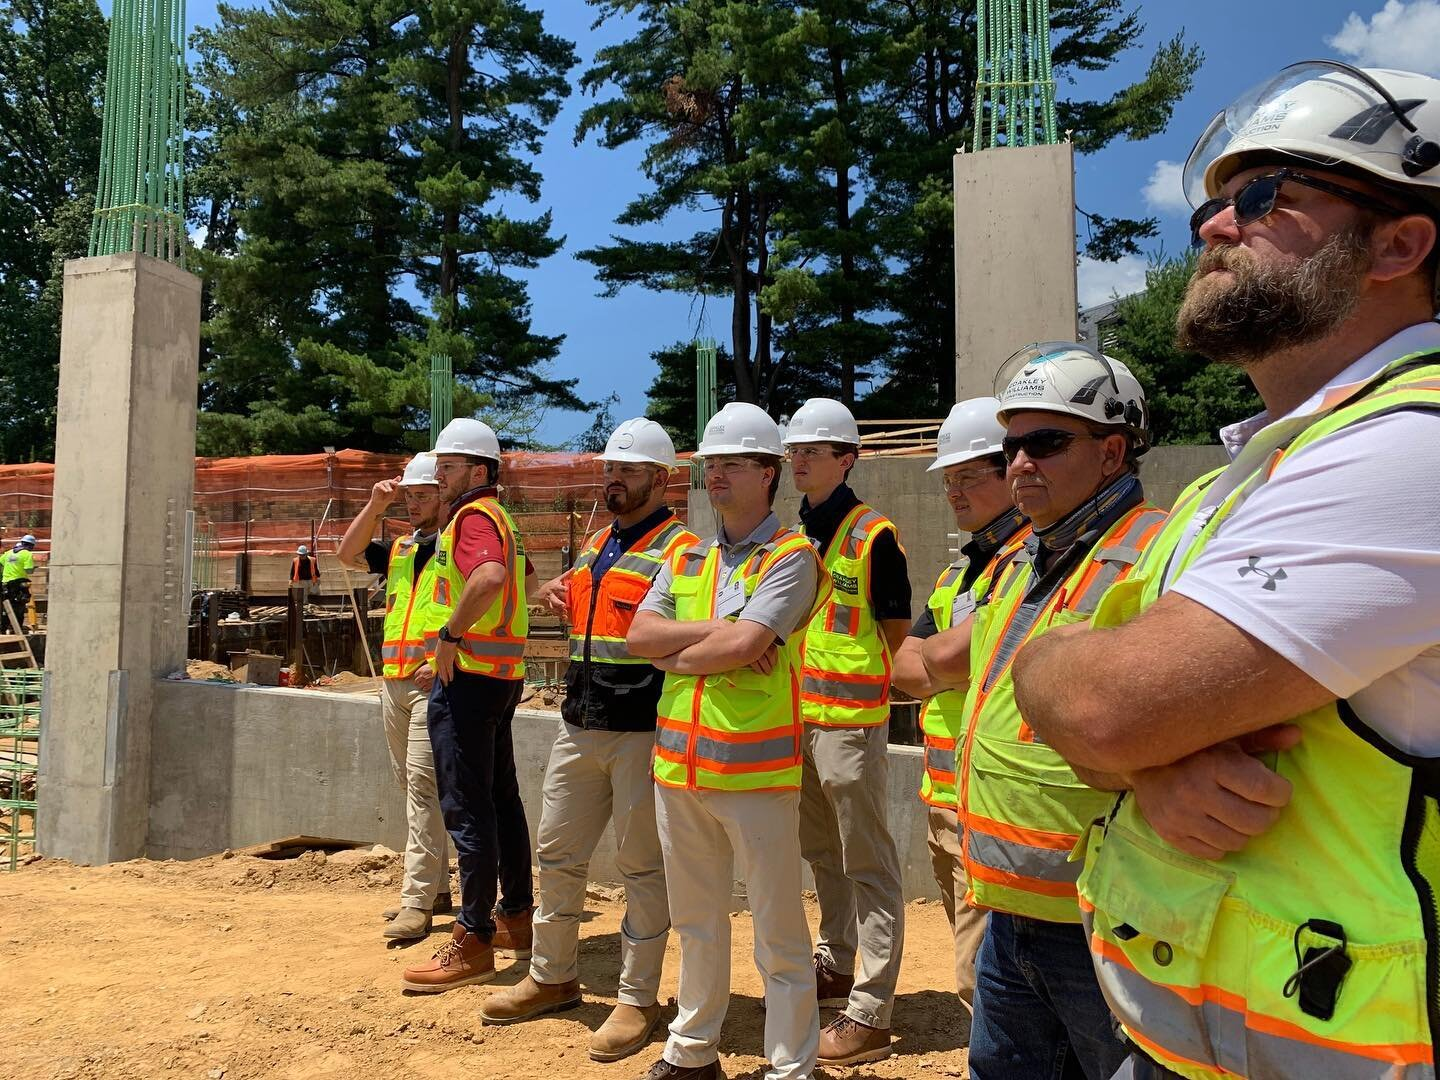 """CWC's #summerinterns recently visited the @NIHgov Campus for a site tour, where they got to see a """"day in the life"""" of a #Superintendent and learn about the key role they play in the #construction industry. #BuildSomething #constructioninterns"""